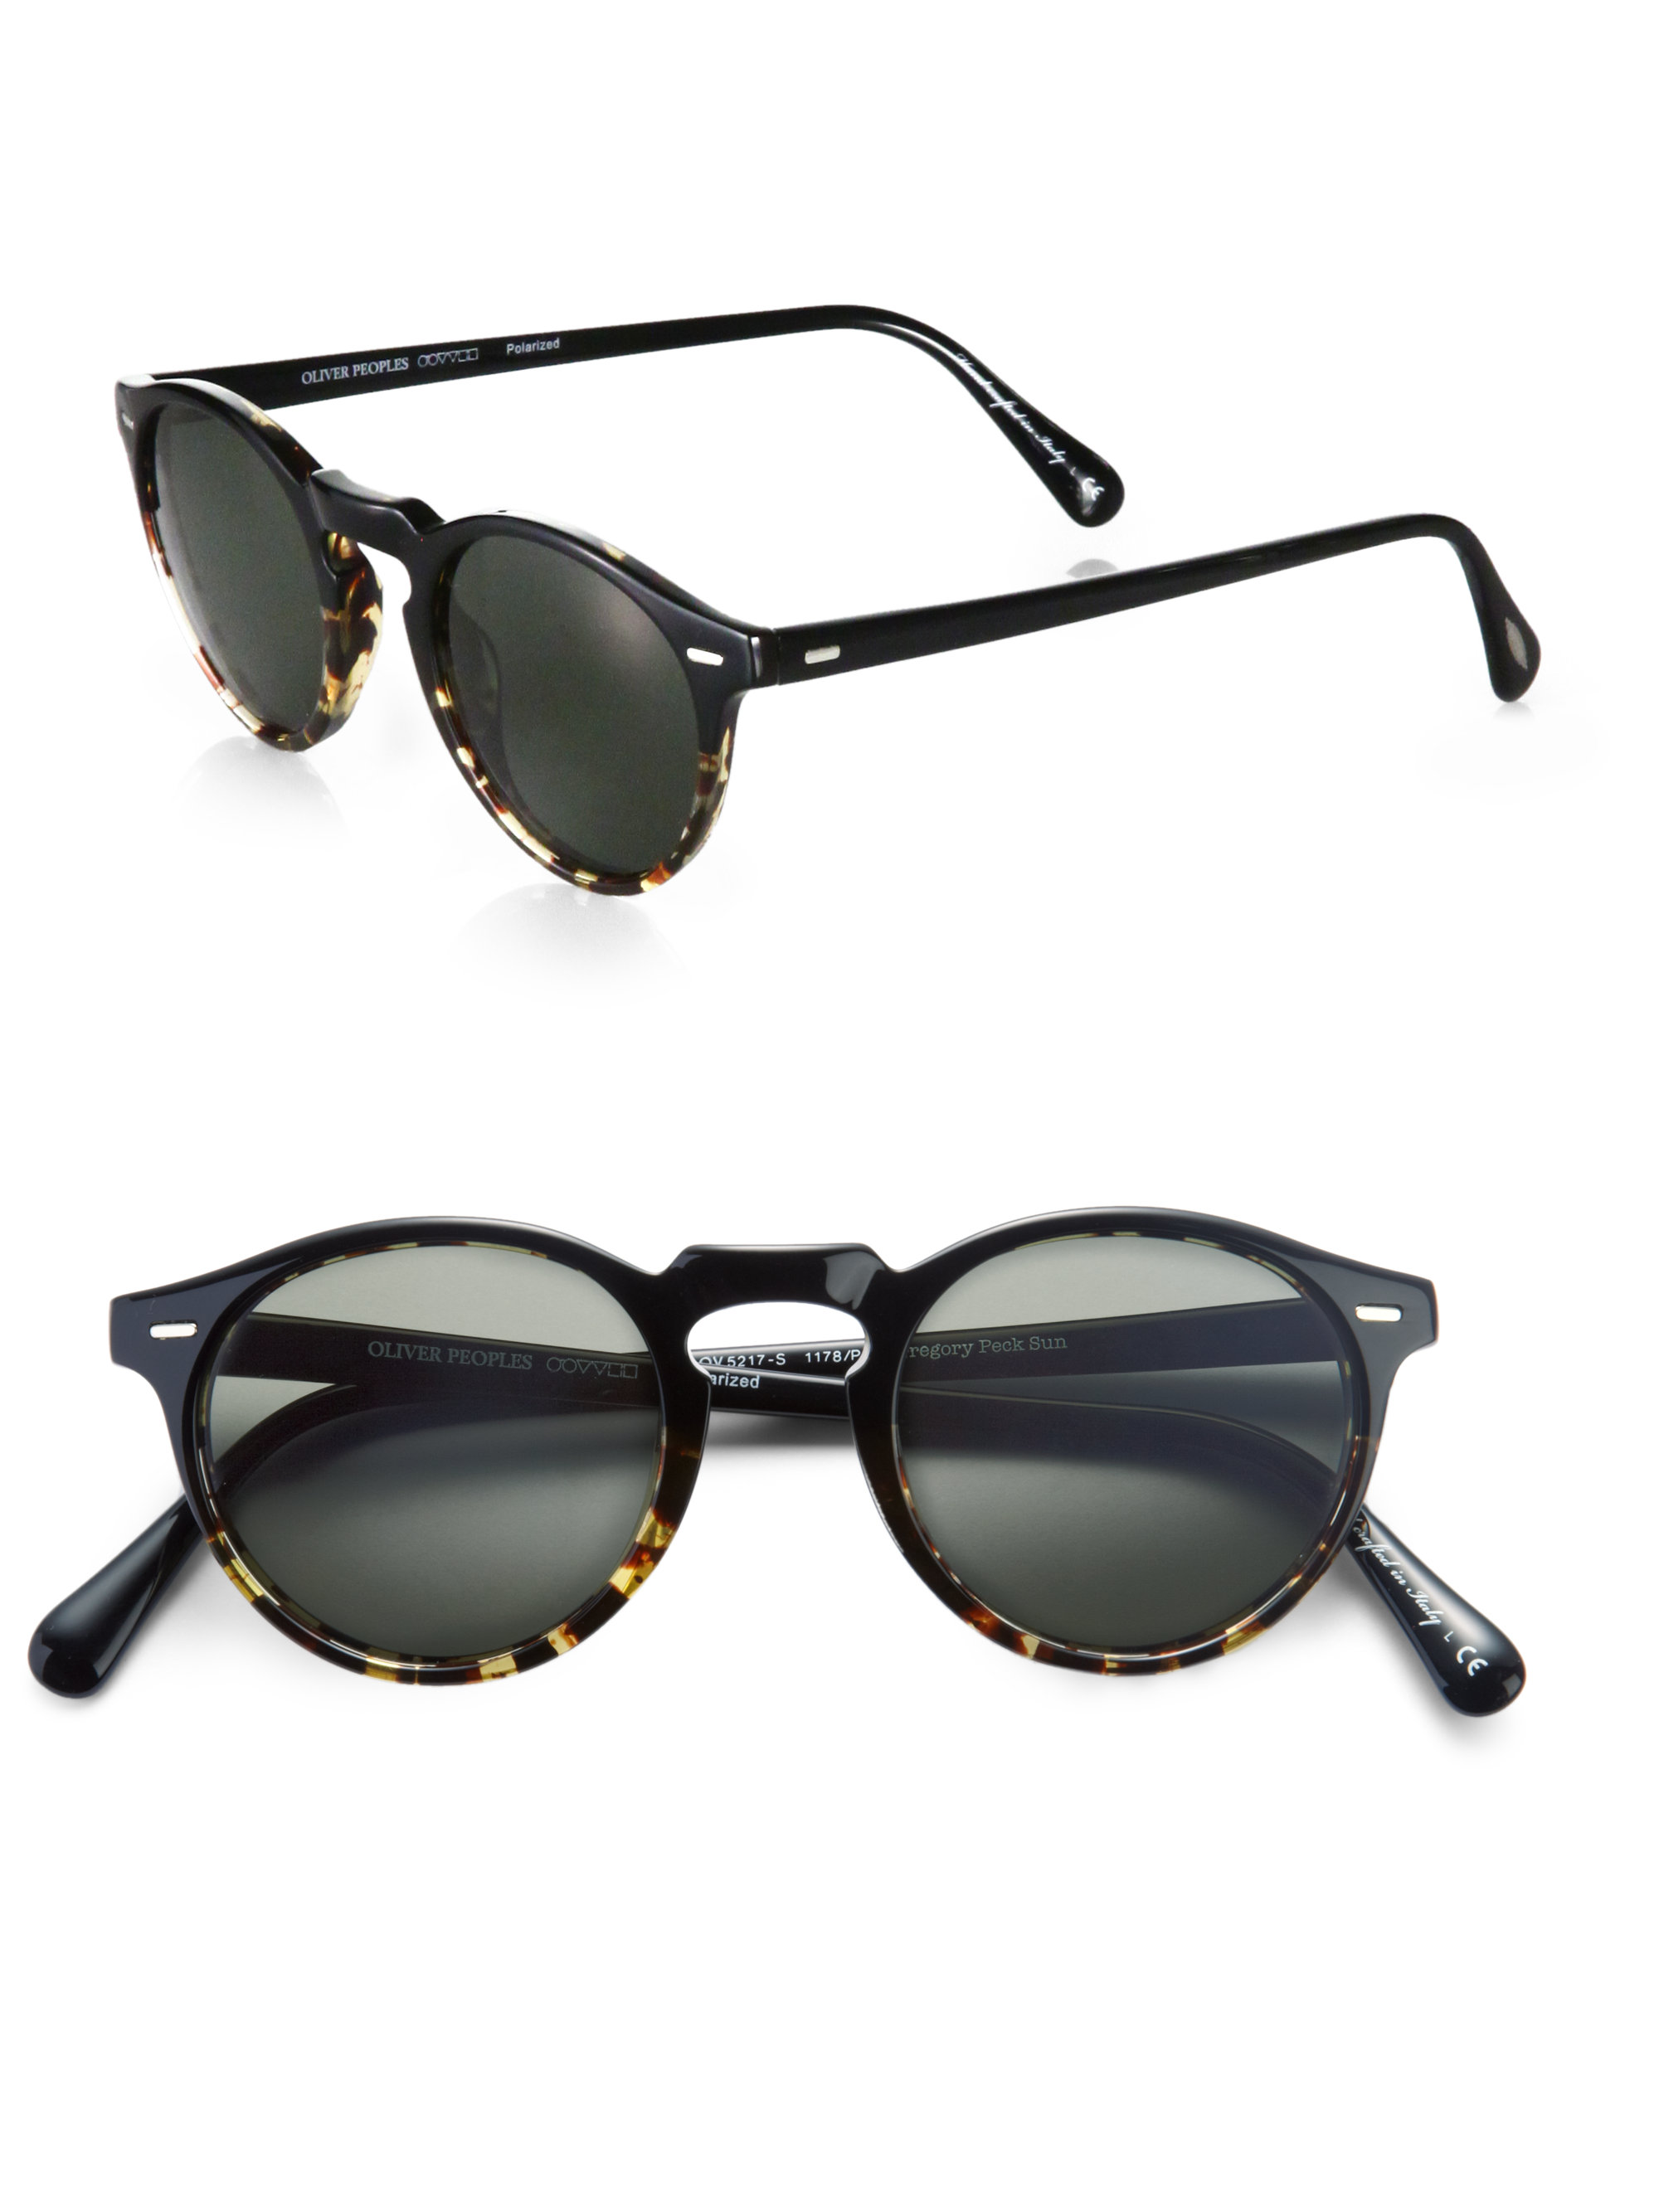 Gregory Peck Sunglasses  oliver peoples gregory peck round polarized sunglasses in black lyst